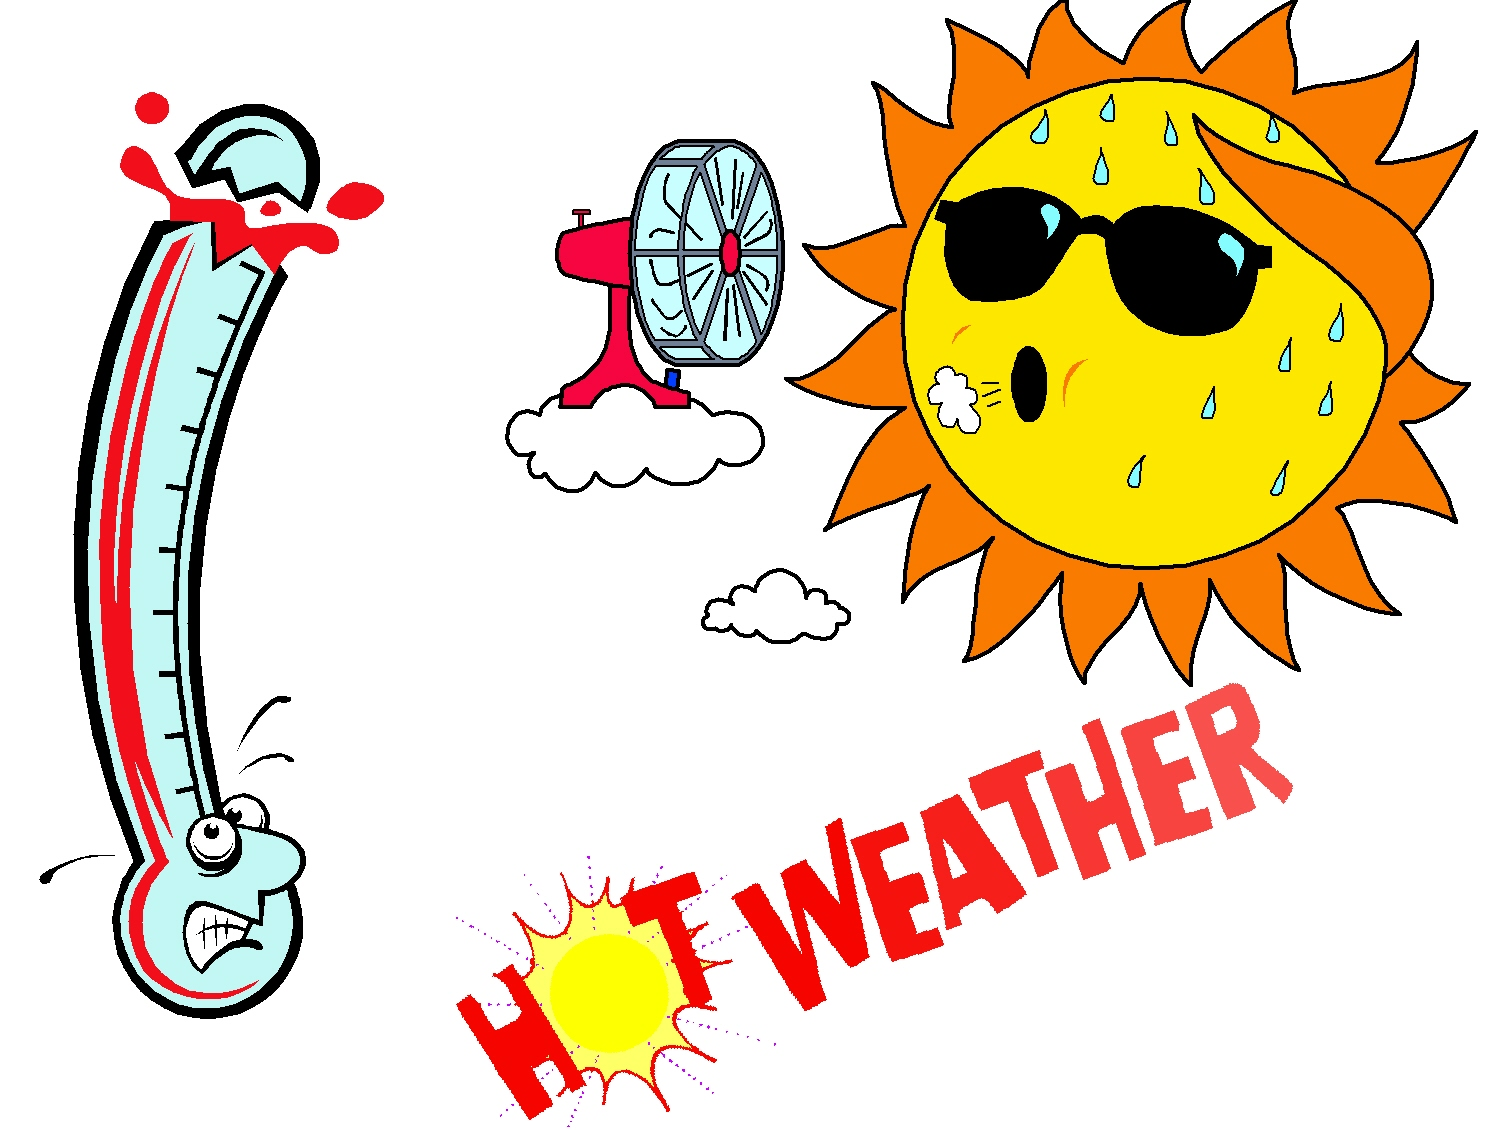 Hot weather clipart images clipart download Free Hot Weather Cliparts, Download Free Clip Art, Free Clip ... clipart download